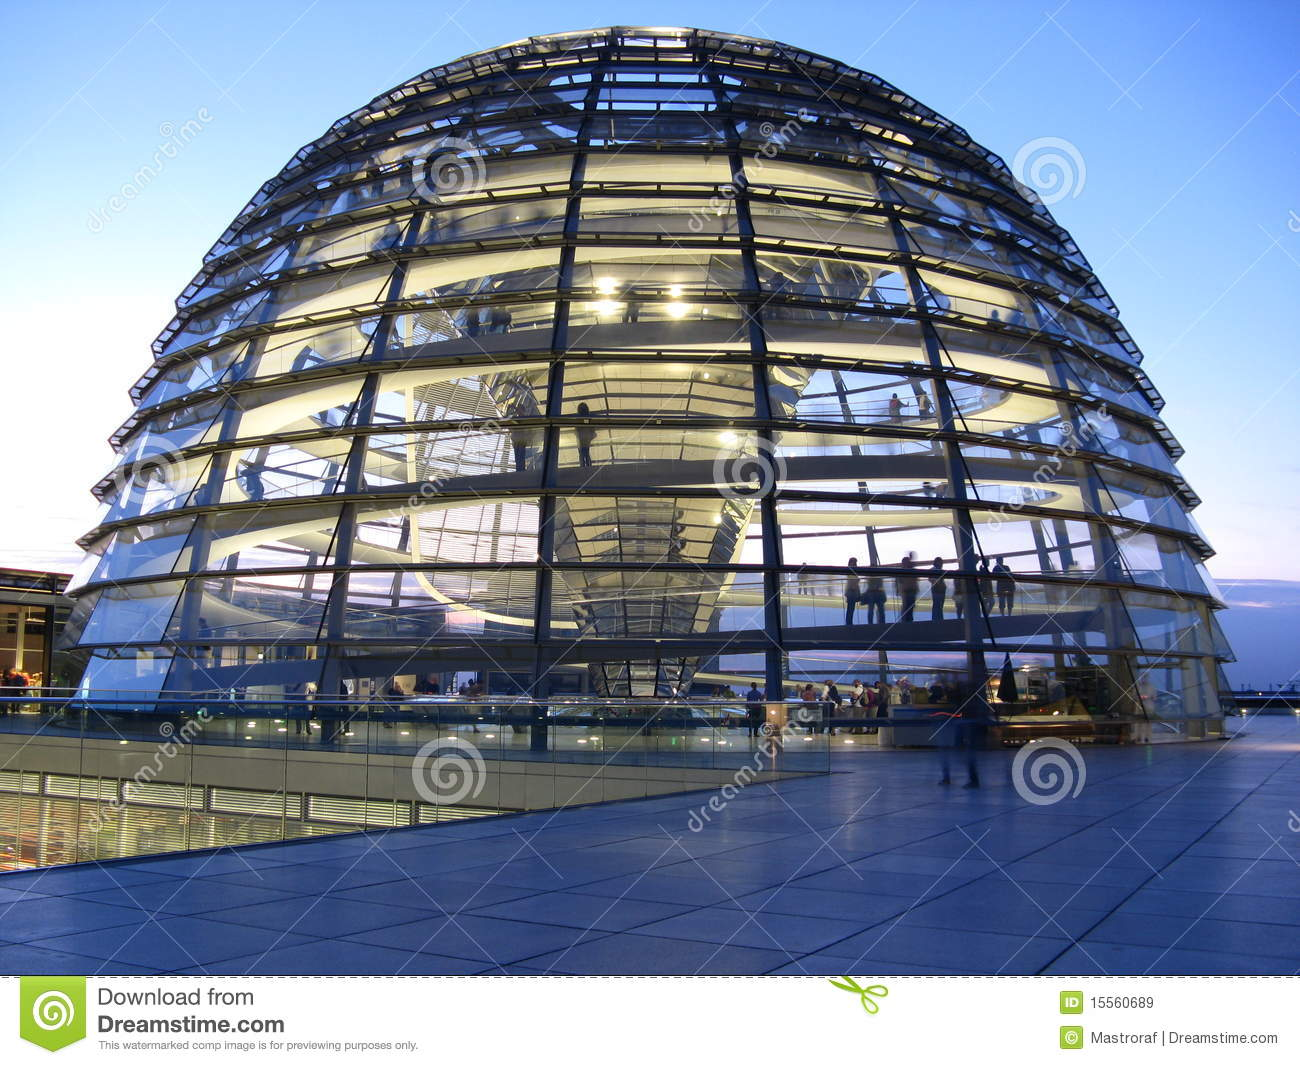 The glass dome on the top of the reichstag in berlin